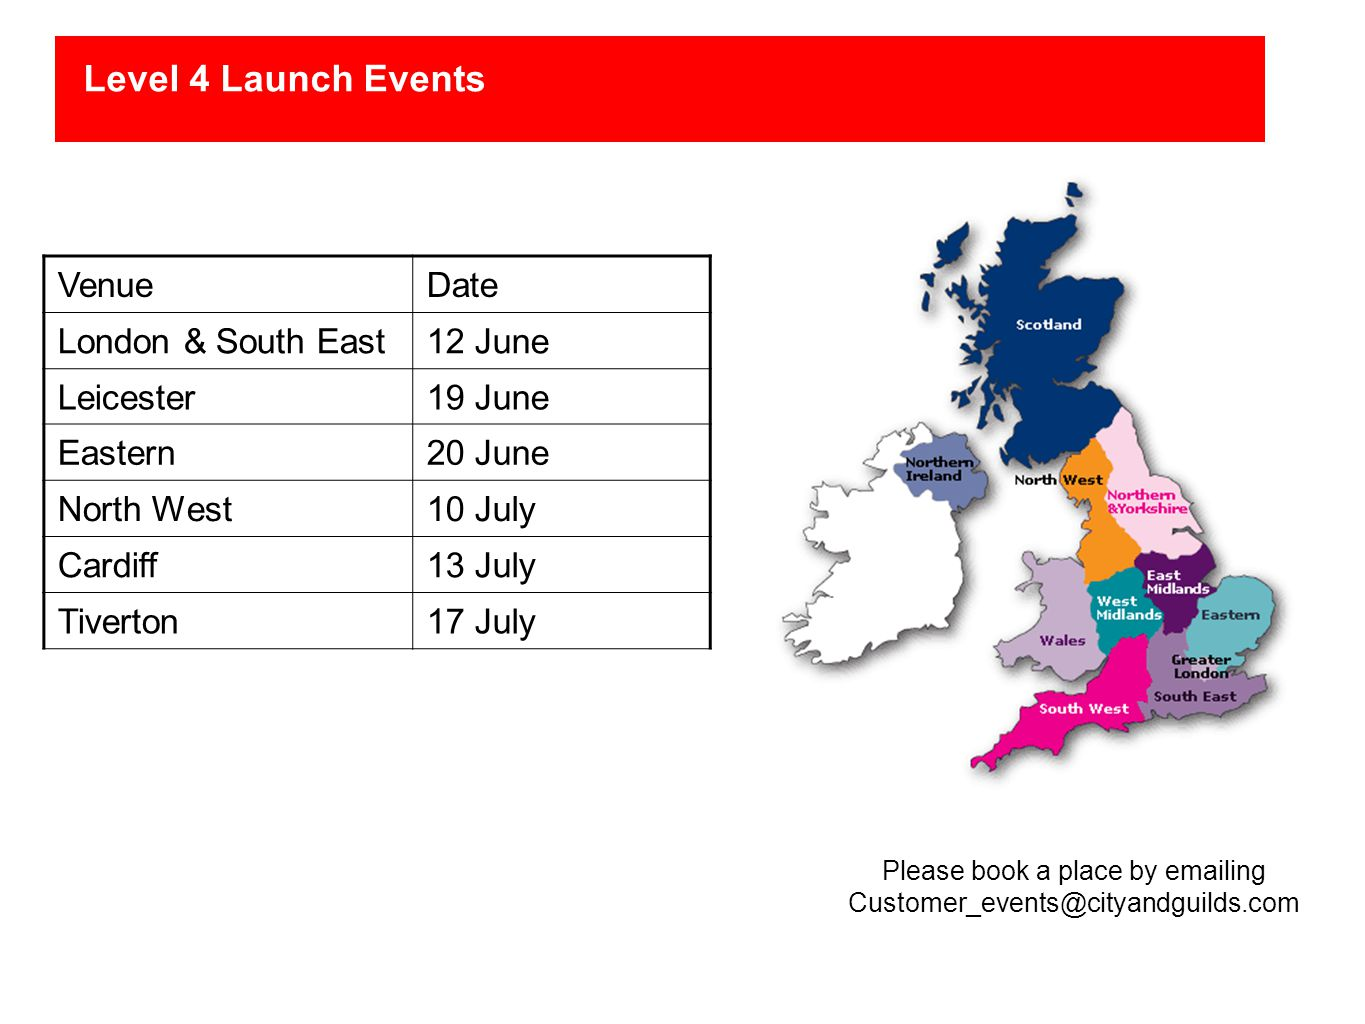 Level 4 Launch Events VenueDate London & South East12 June Leicester19 June Eastern20 June North West10 July Cardiff13 July Tiverton17 July Please boo